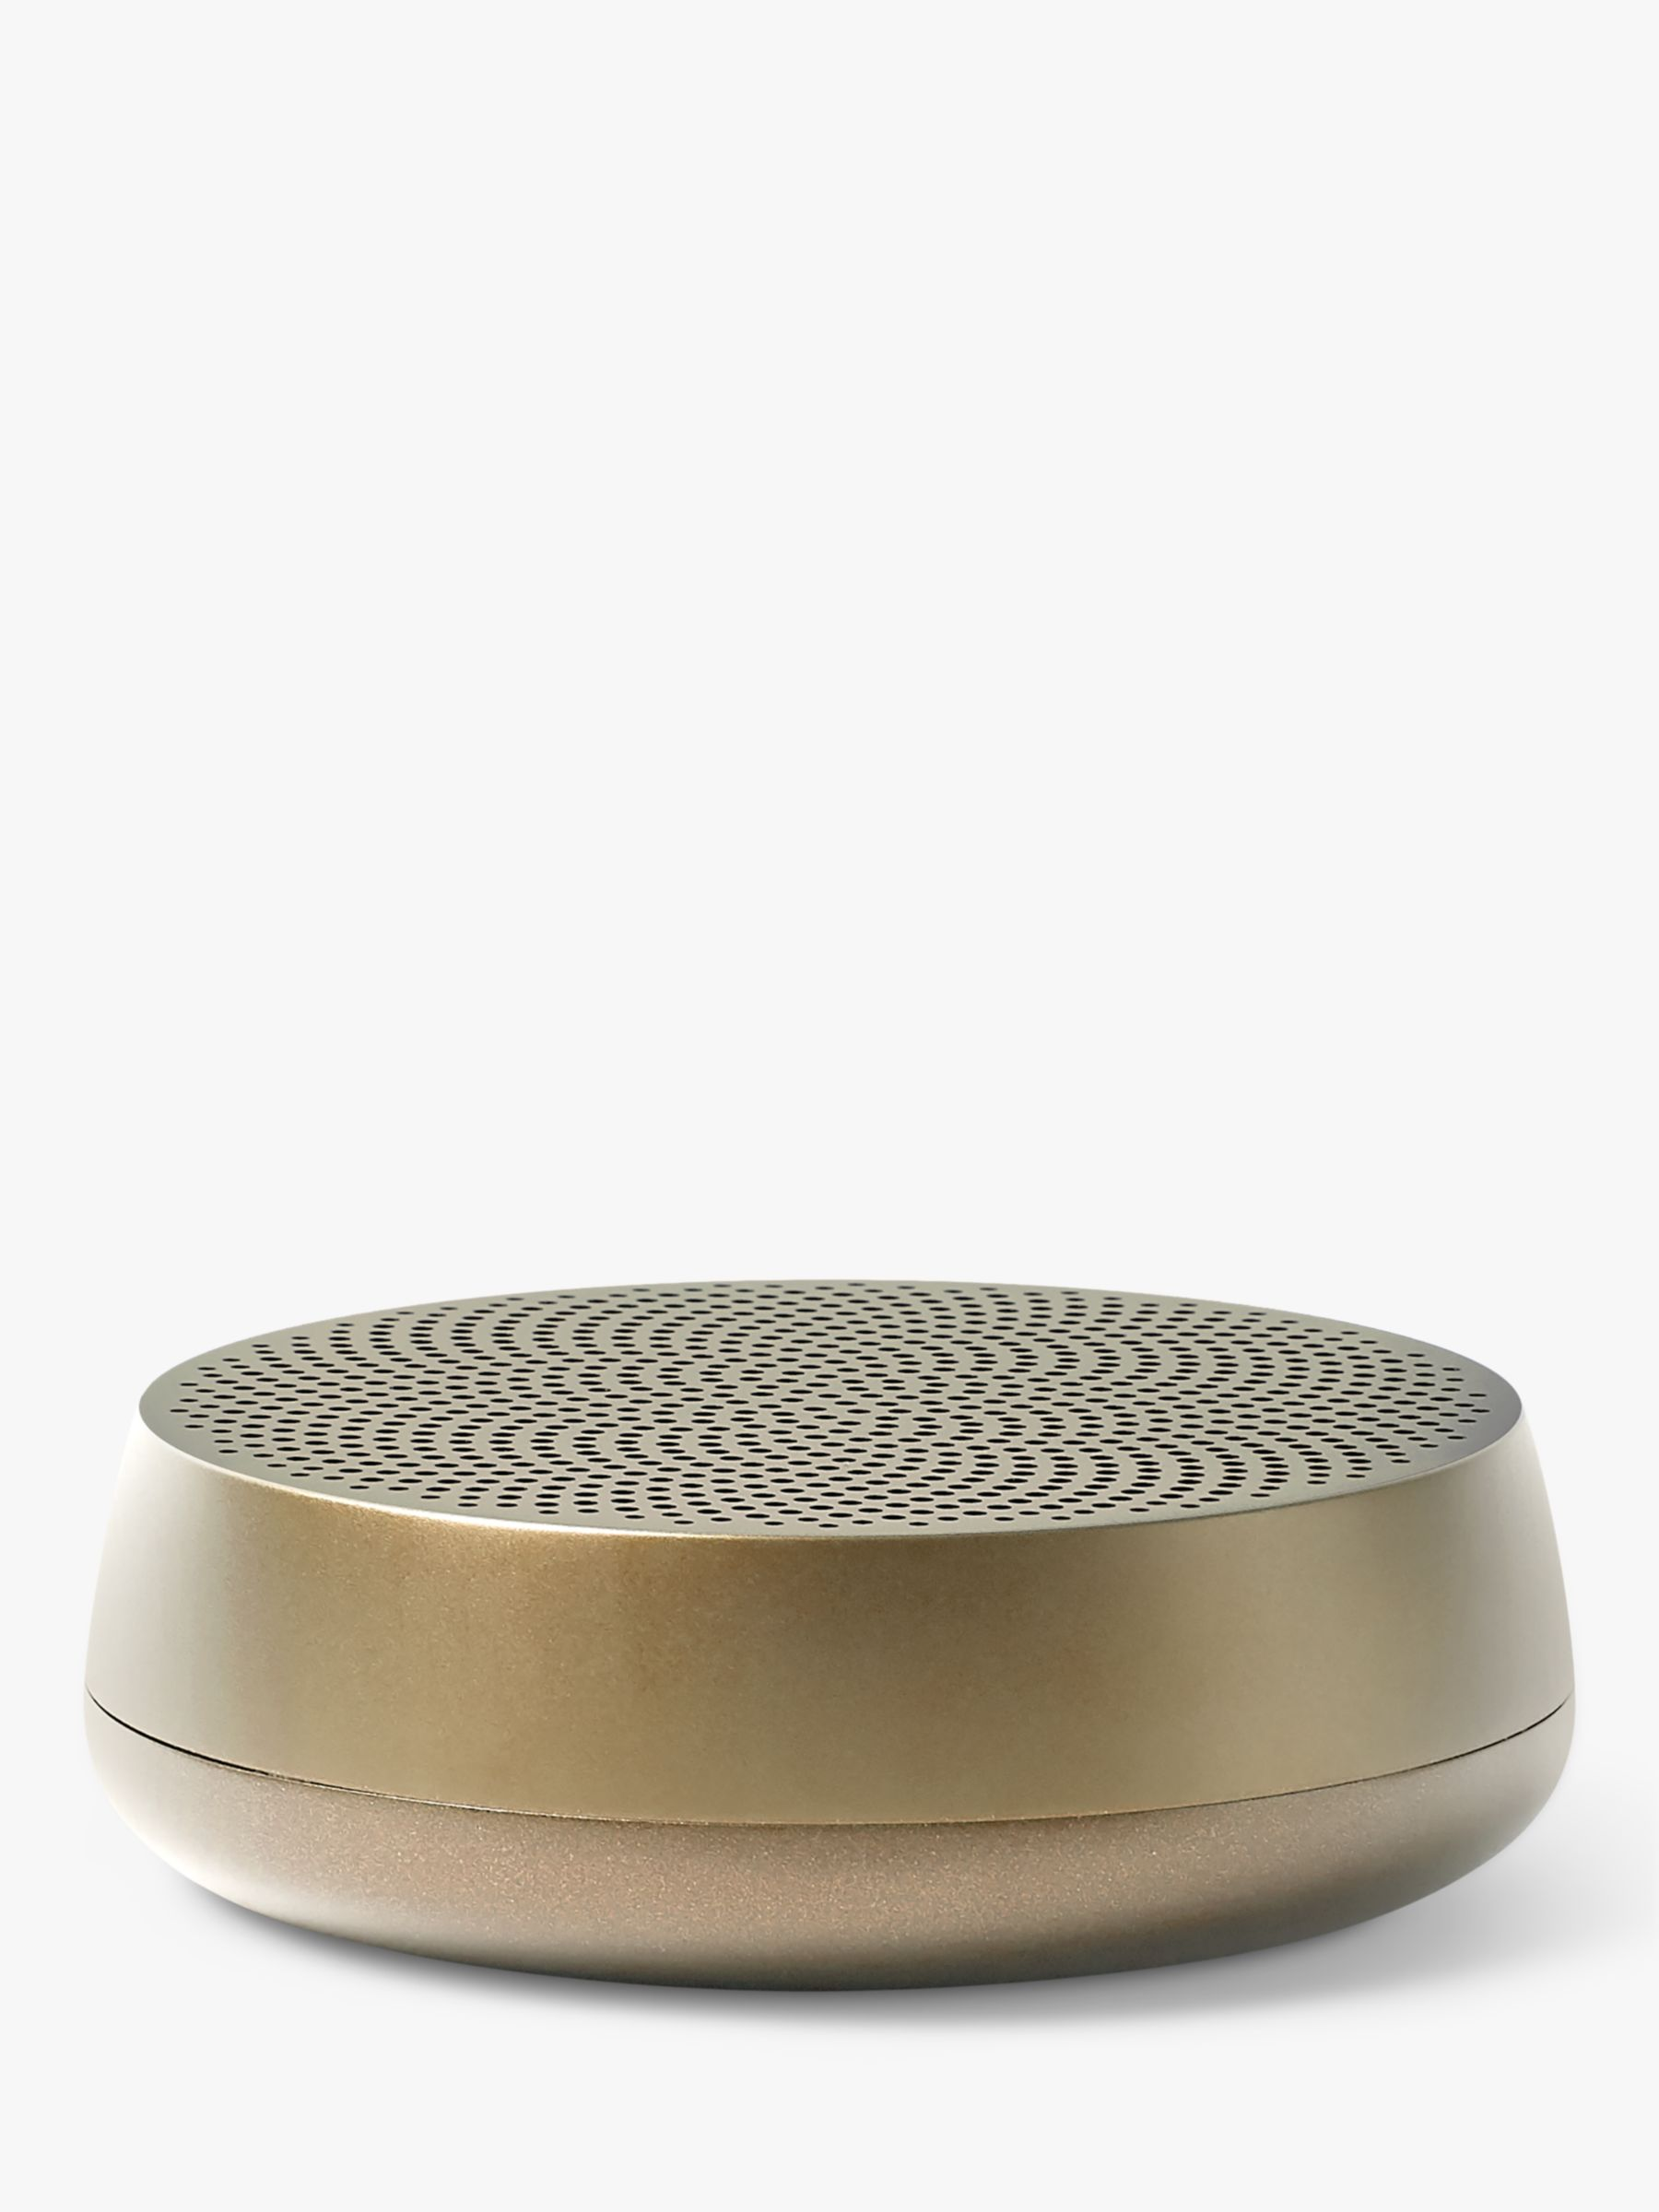 Lexon Lexon Mino L Portable Bluetooth Speaker